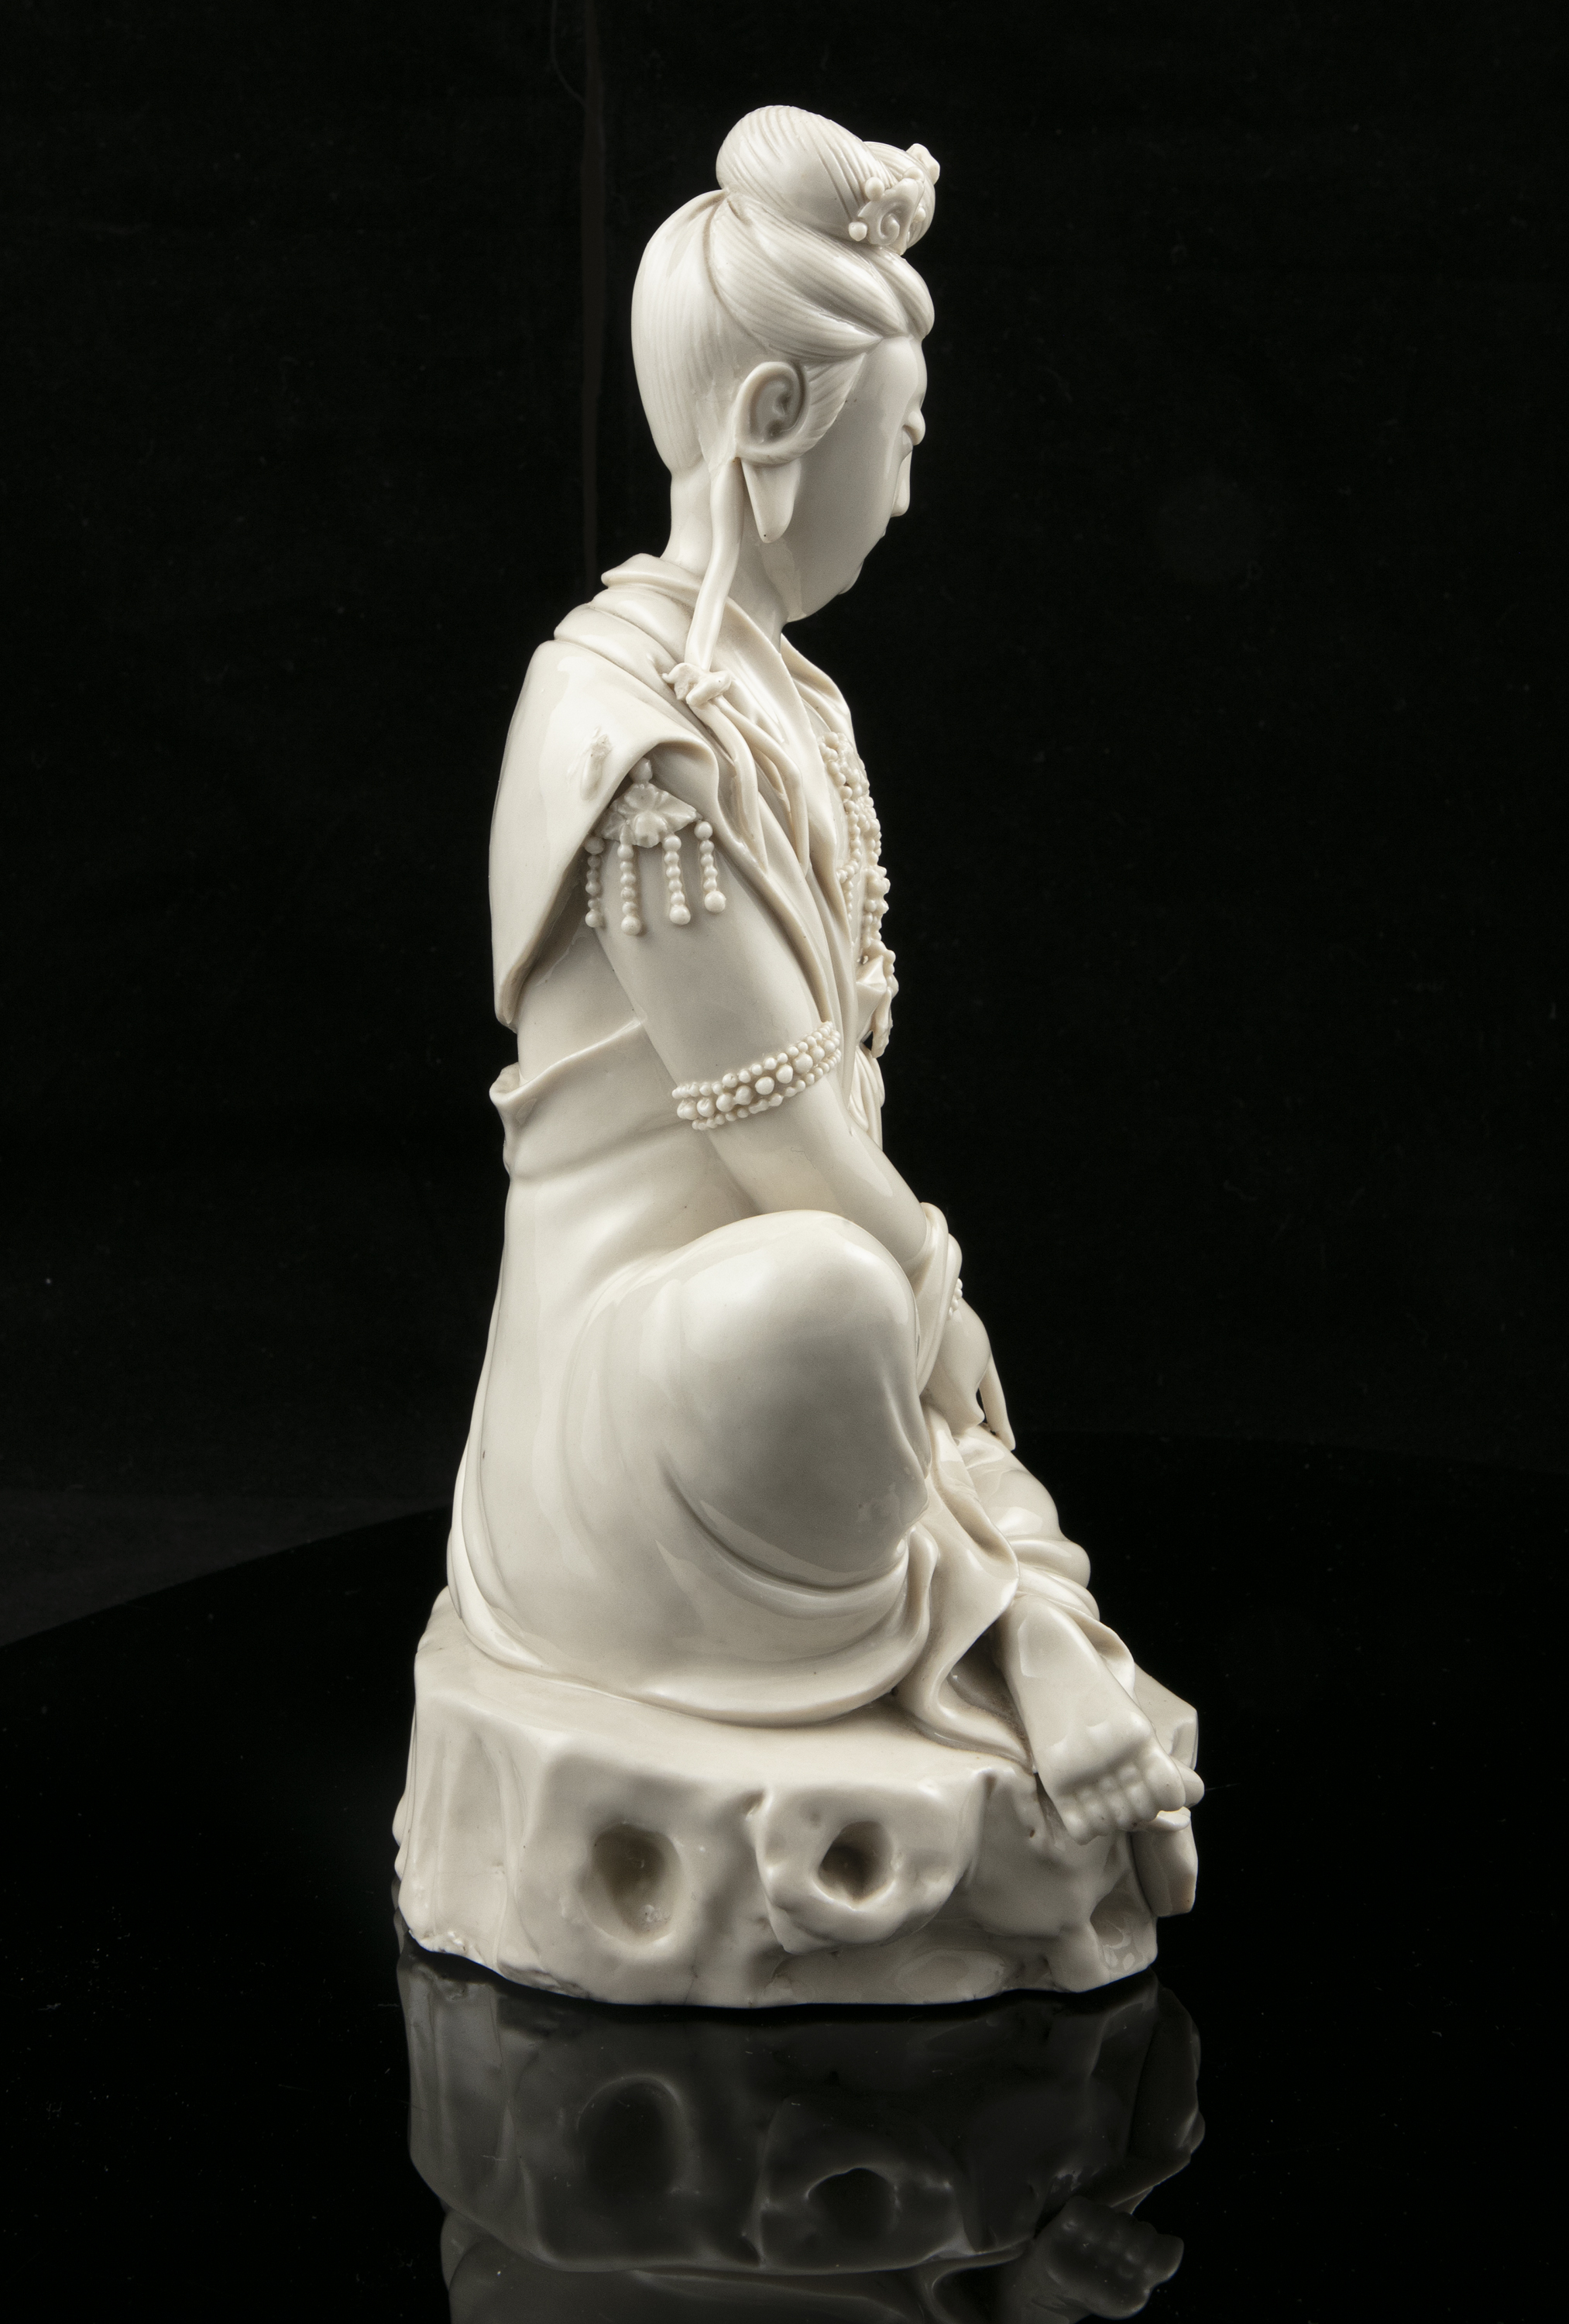 A LARGE DEHUA FIGURE OF A SEATED GUANYIN IMPRESSED WITH A HE CHAOZONG 何朝宗 CALABASH SHAPED SEAL - Image 25 of 48